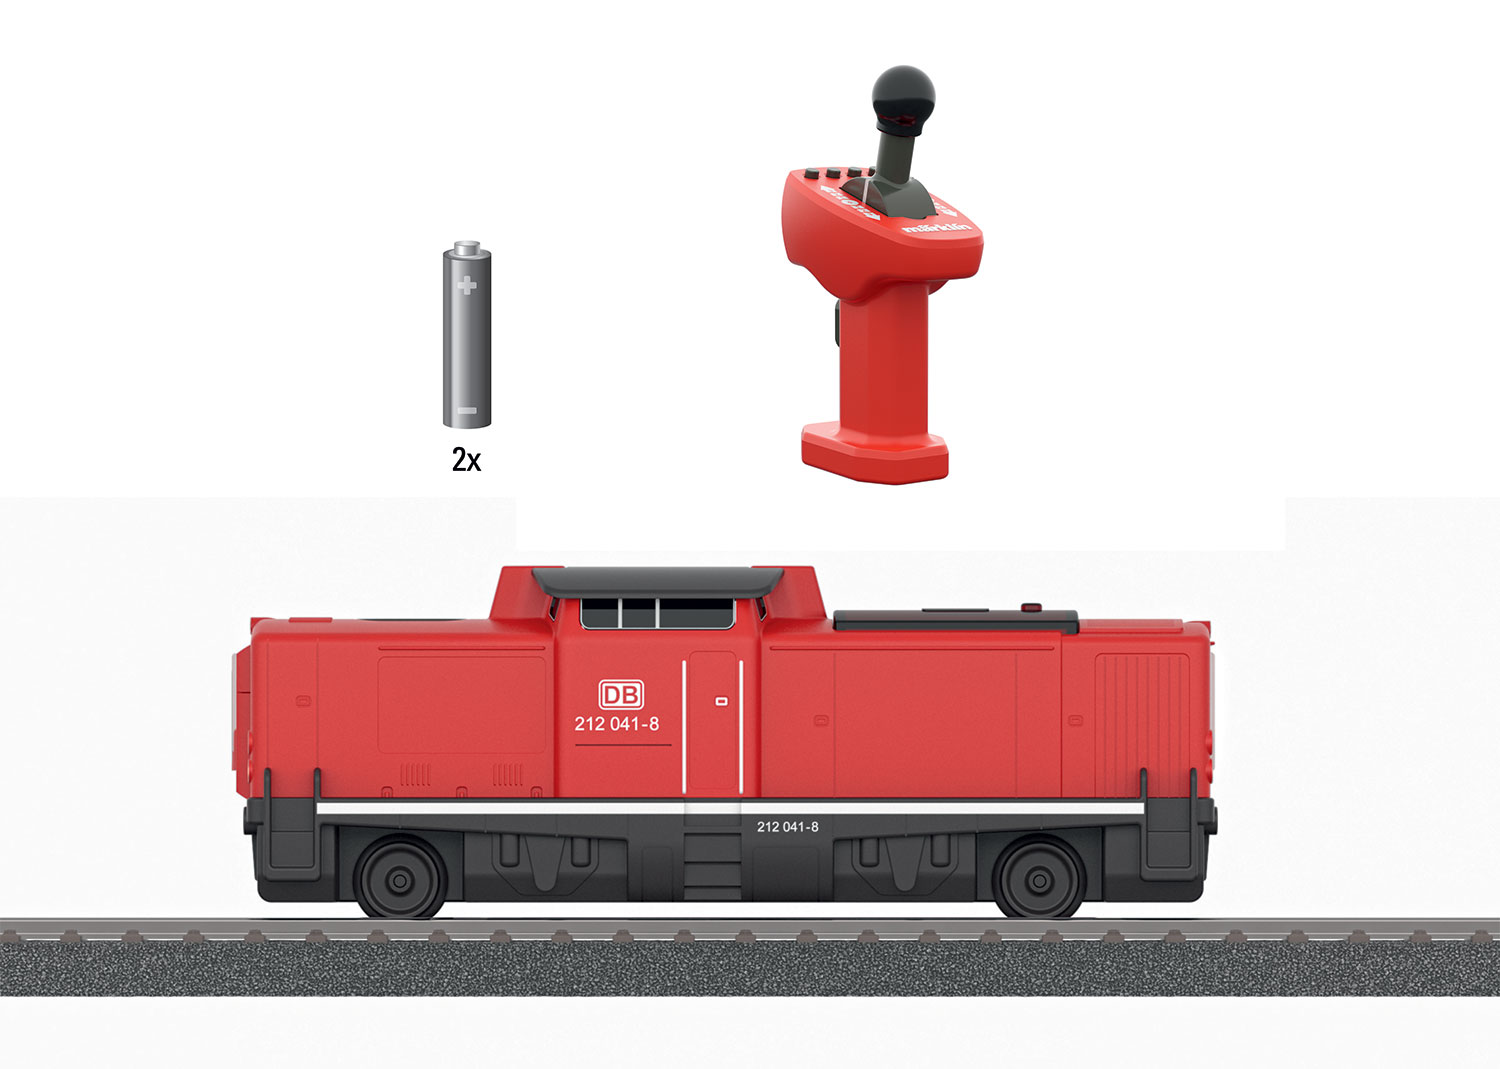 Märklin my world – Class 212 Diesel Locomotive with a Rechargeable Battery